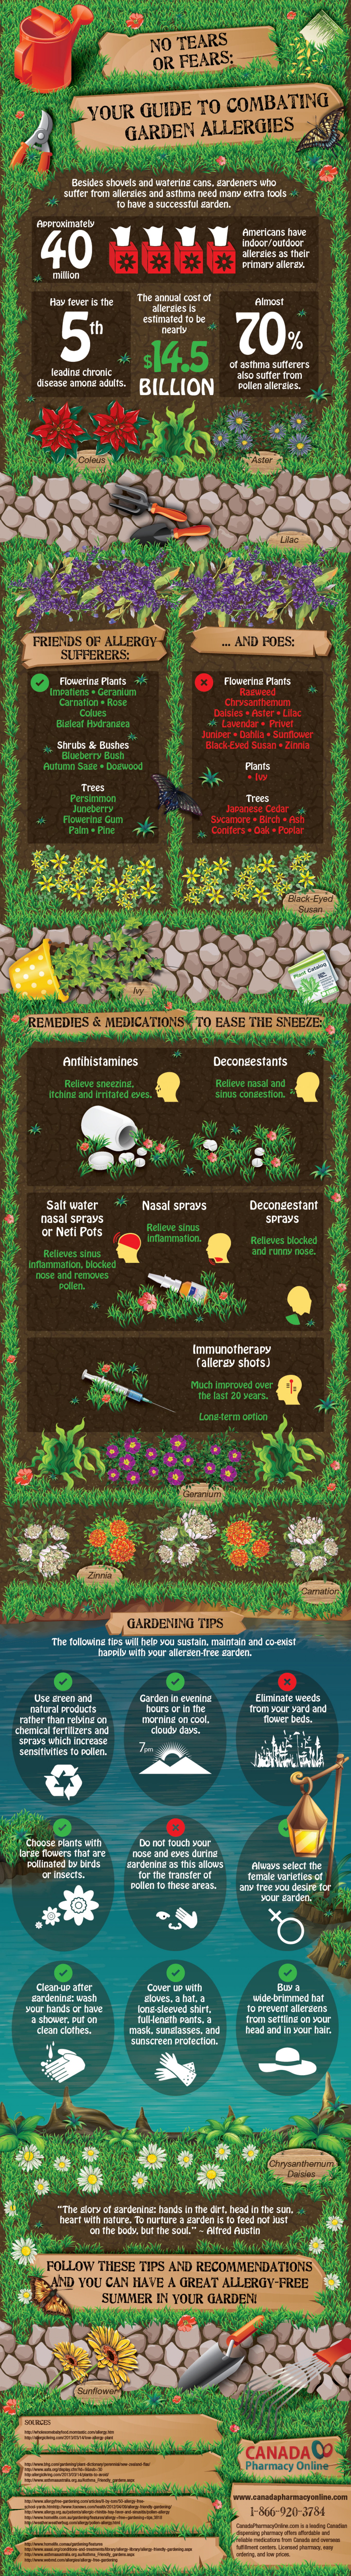 Your Guide to Combating Garden Allergies Infographic